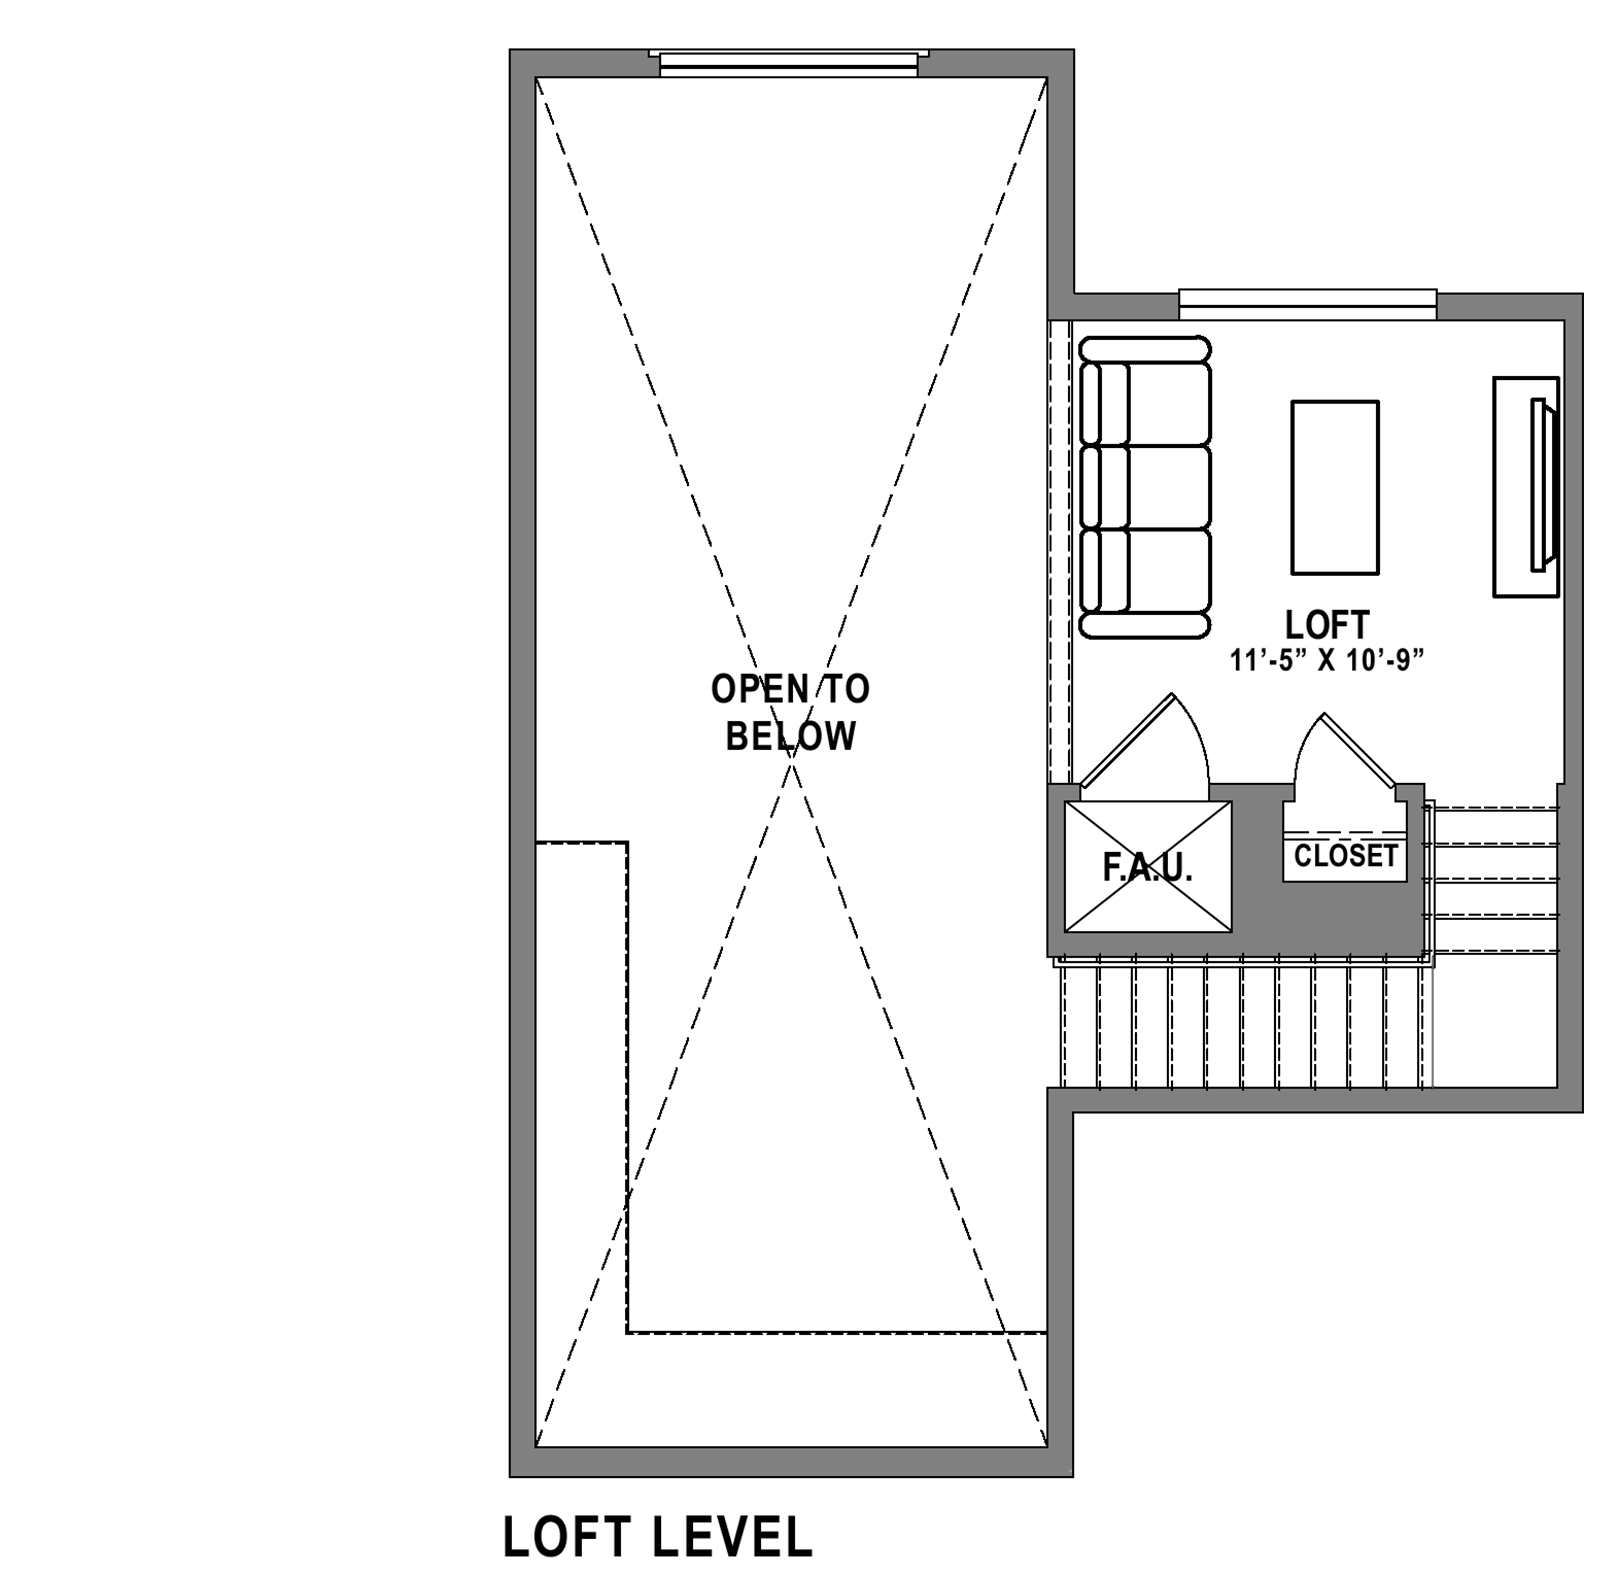 Plan B6 Loft - 2 Bedroom+ Loft, 2 Bath Floor Plan